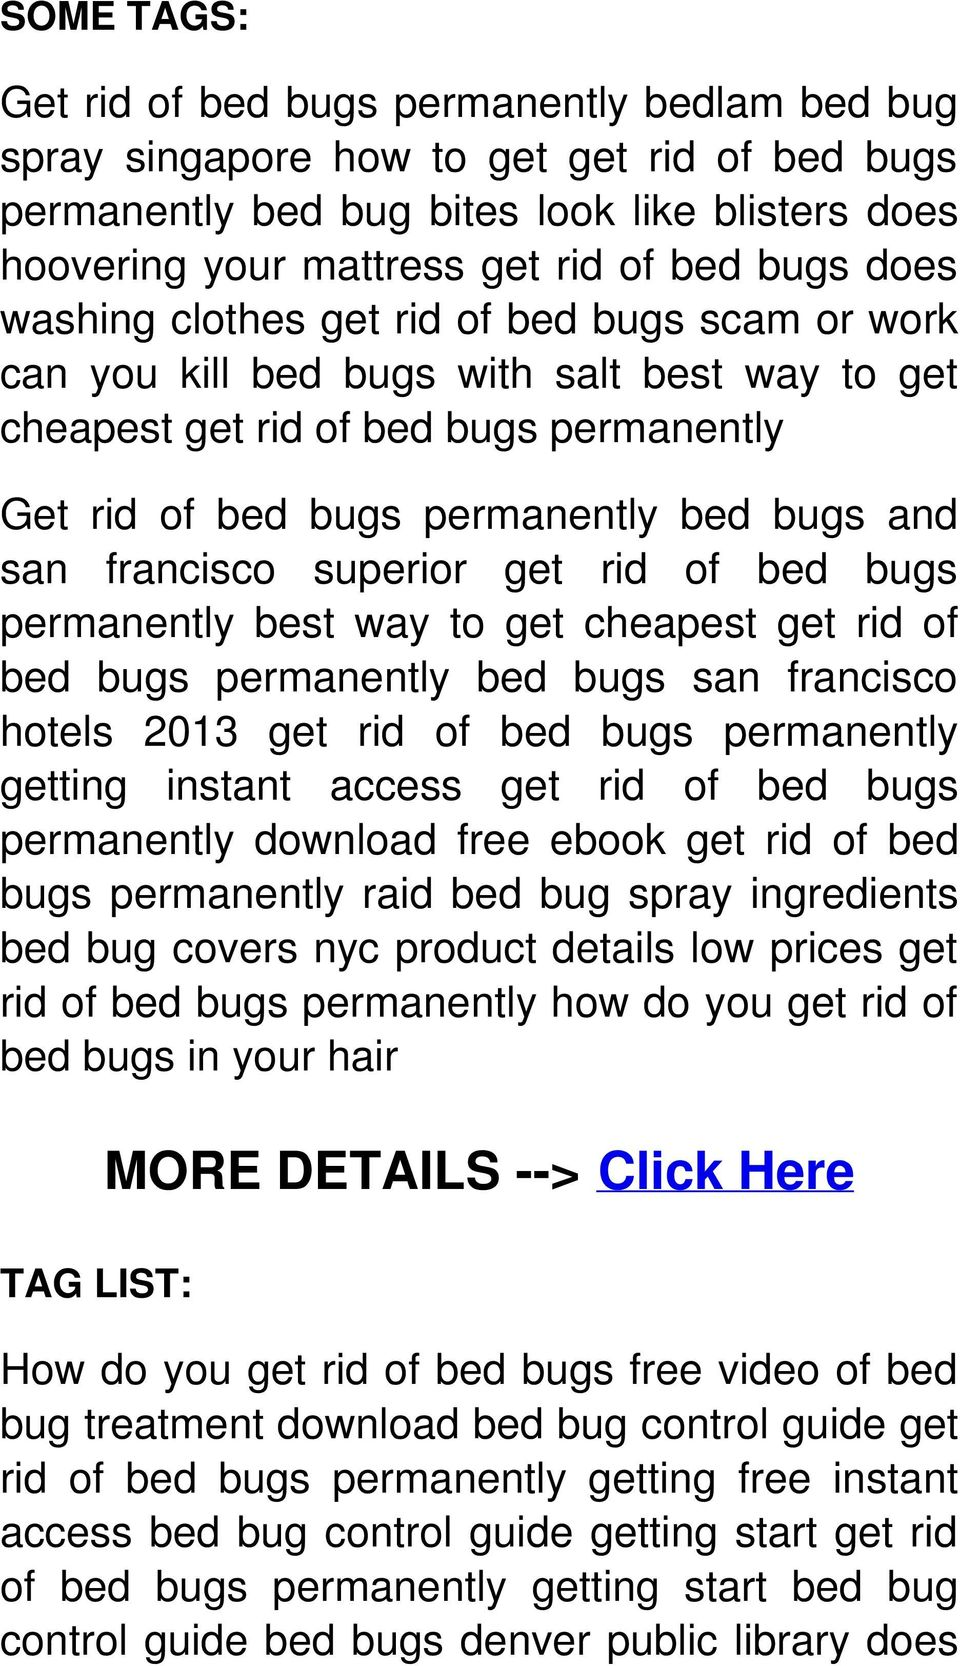 bbc future will we ever get rid of bed bugs. bed bug control